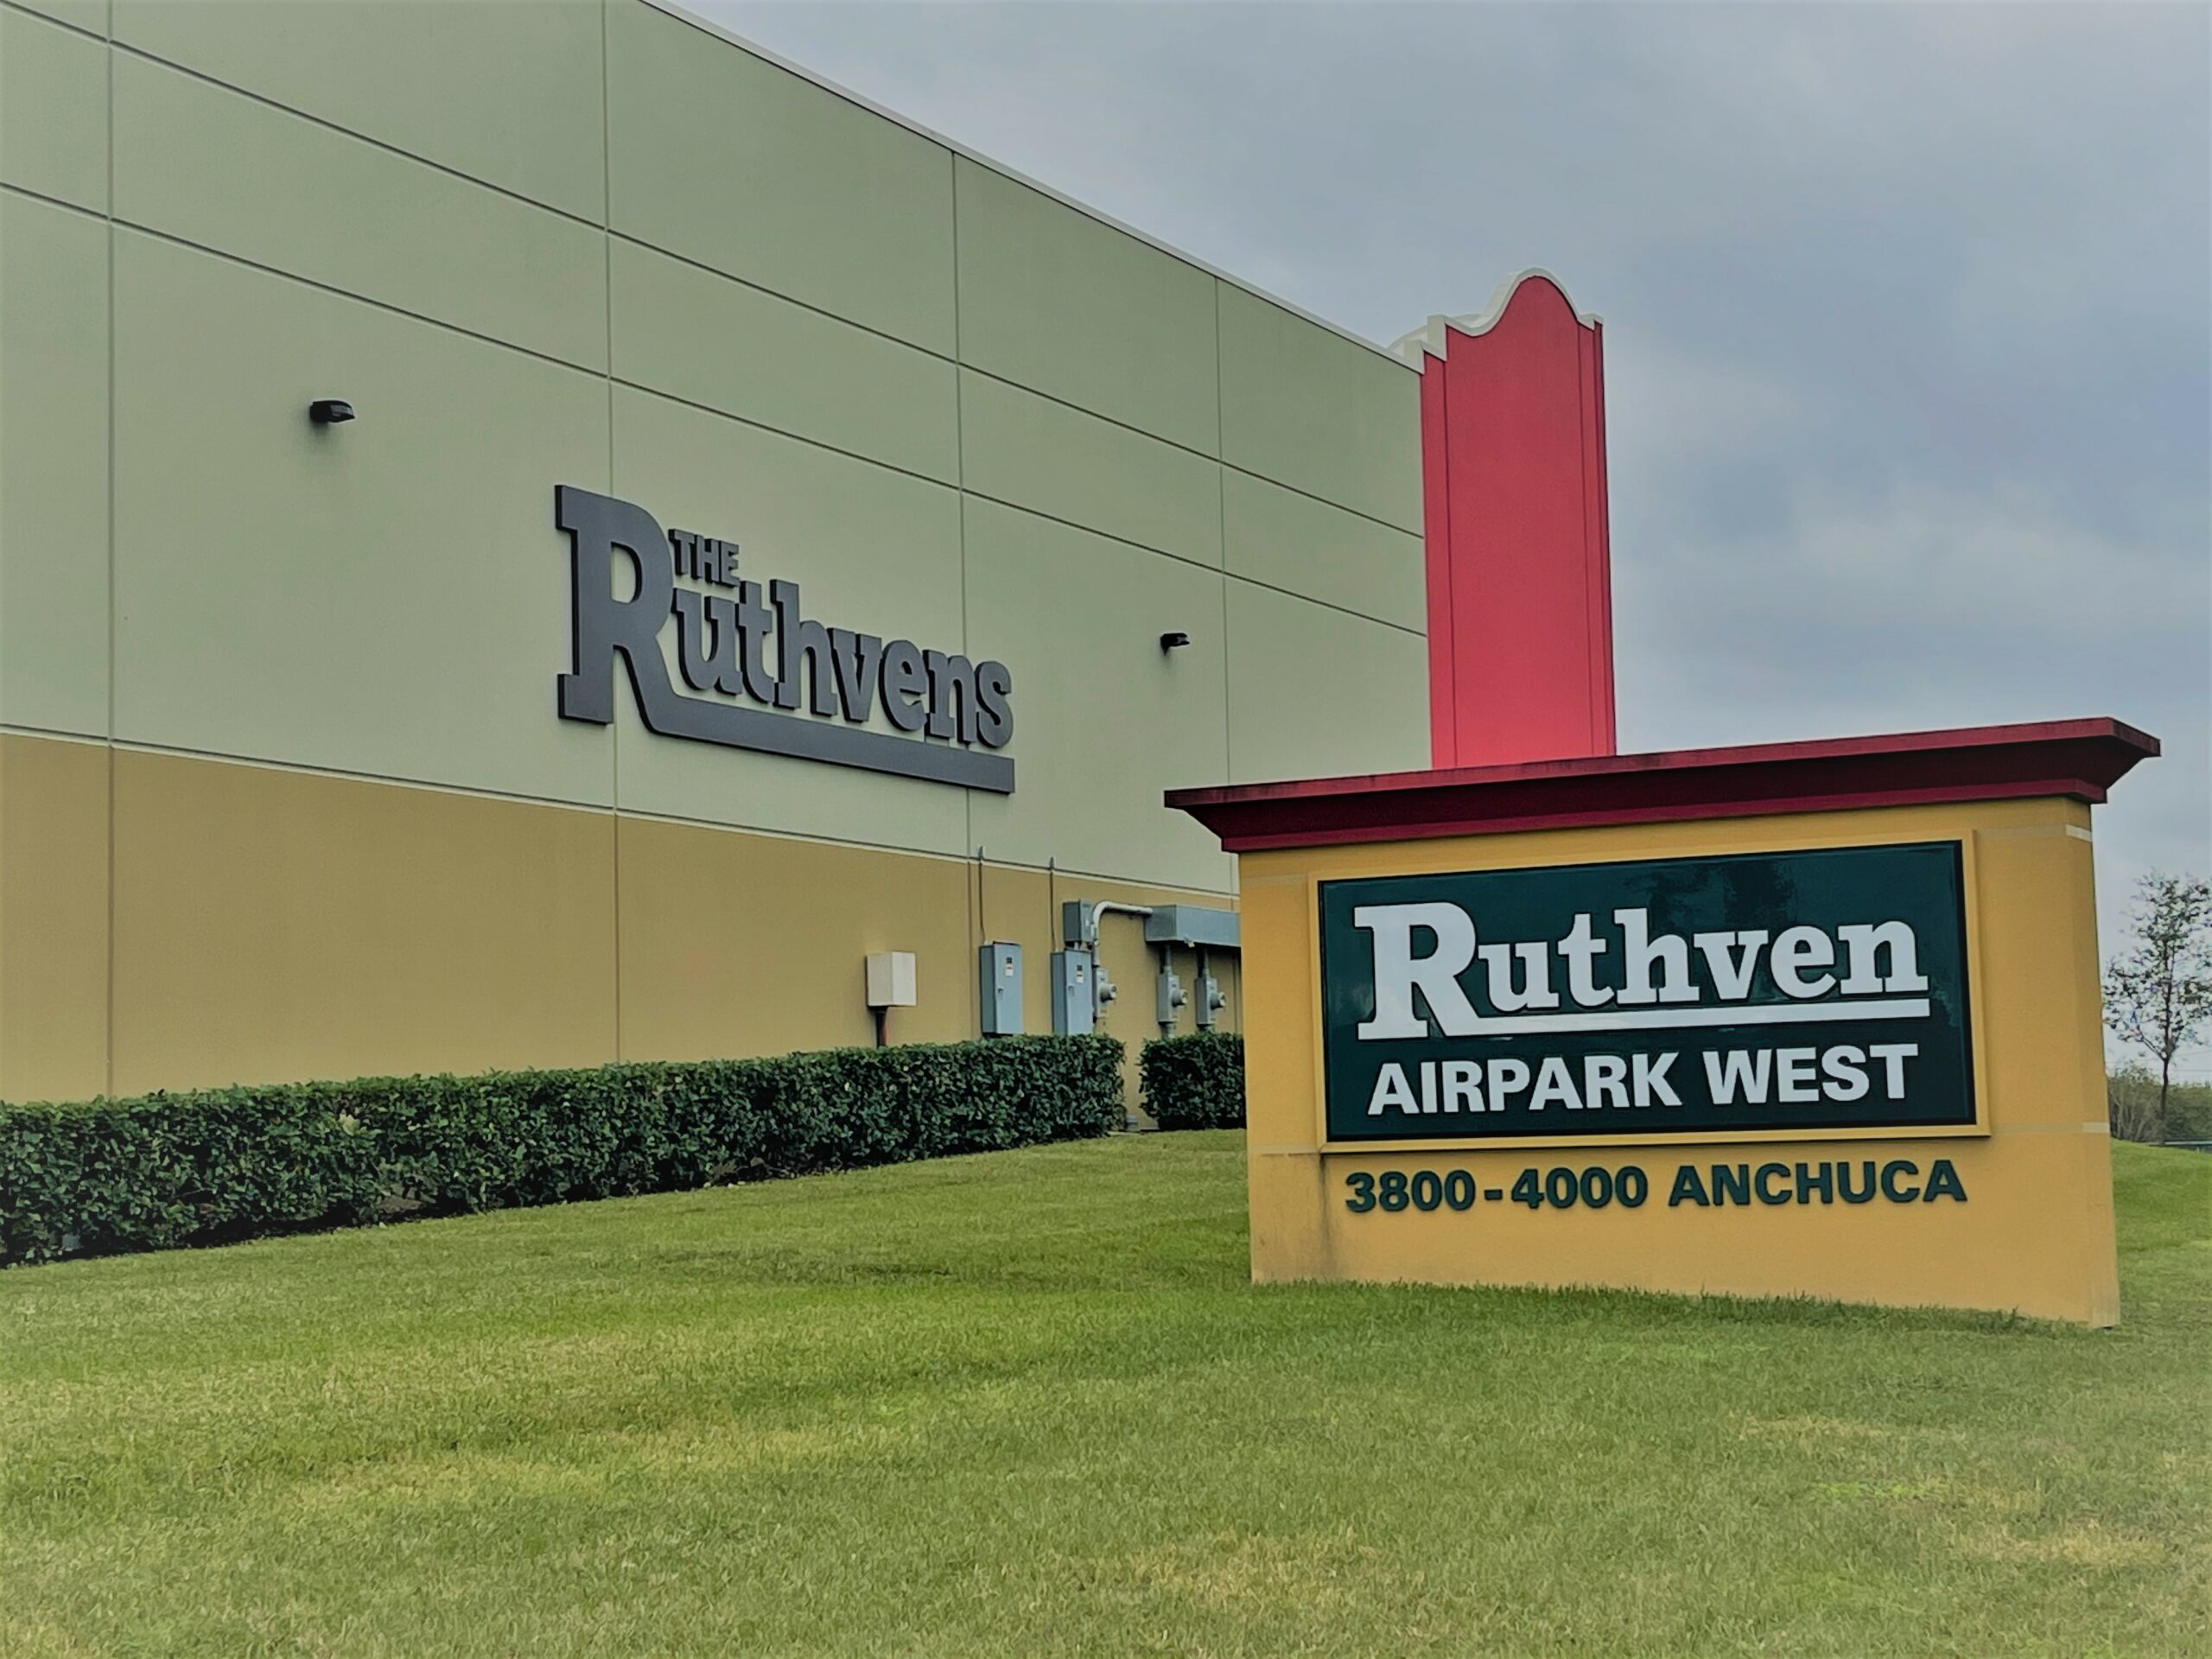 Ruthven - weber environmantal services - industrial complex landscaping